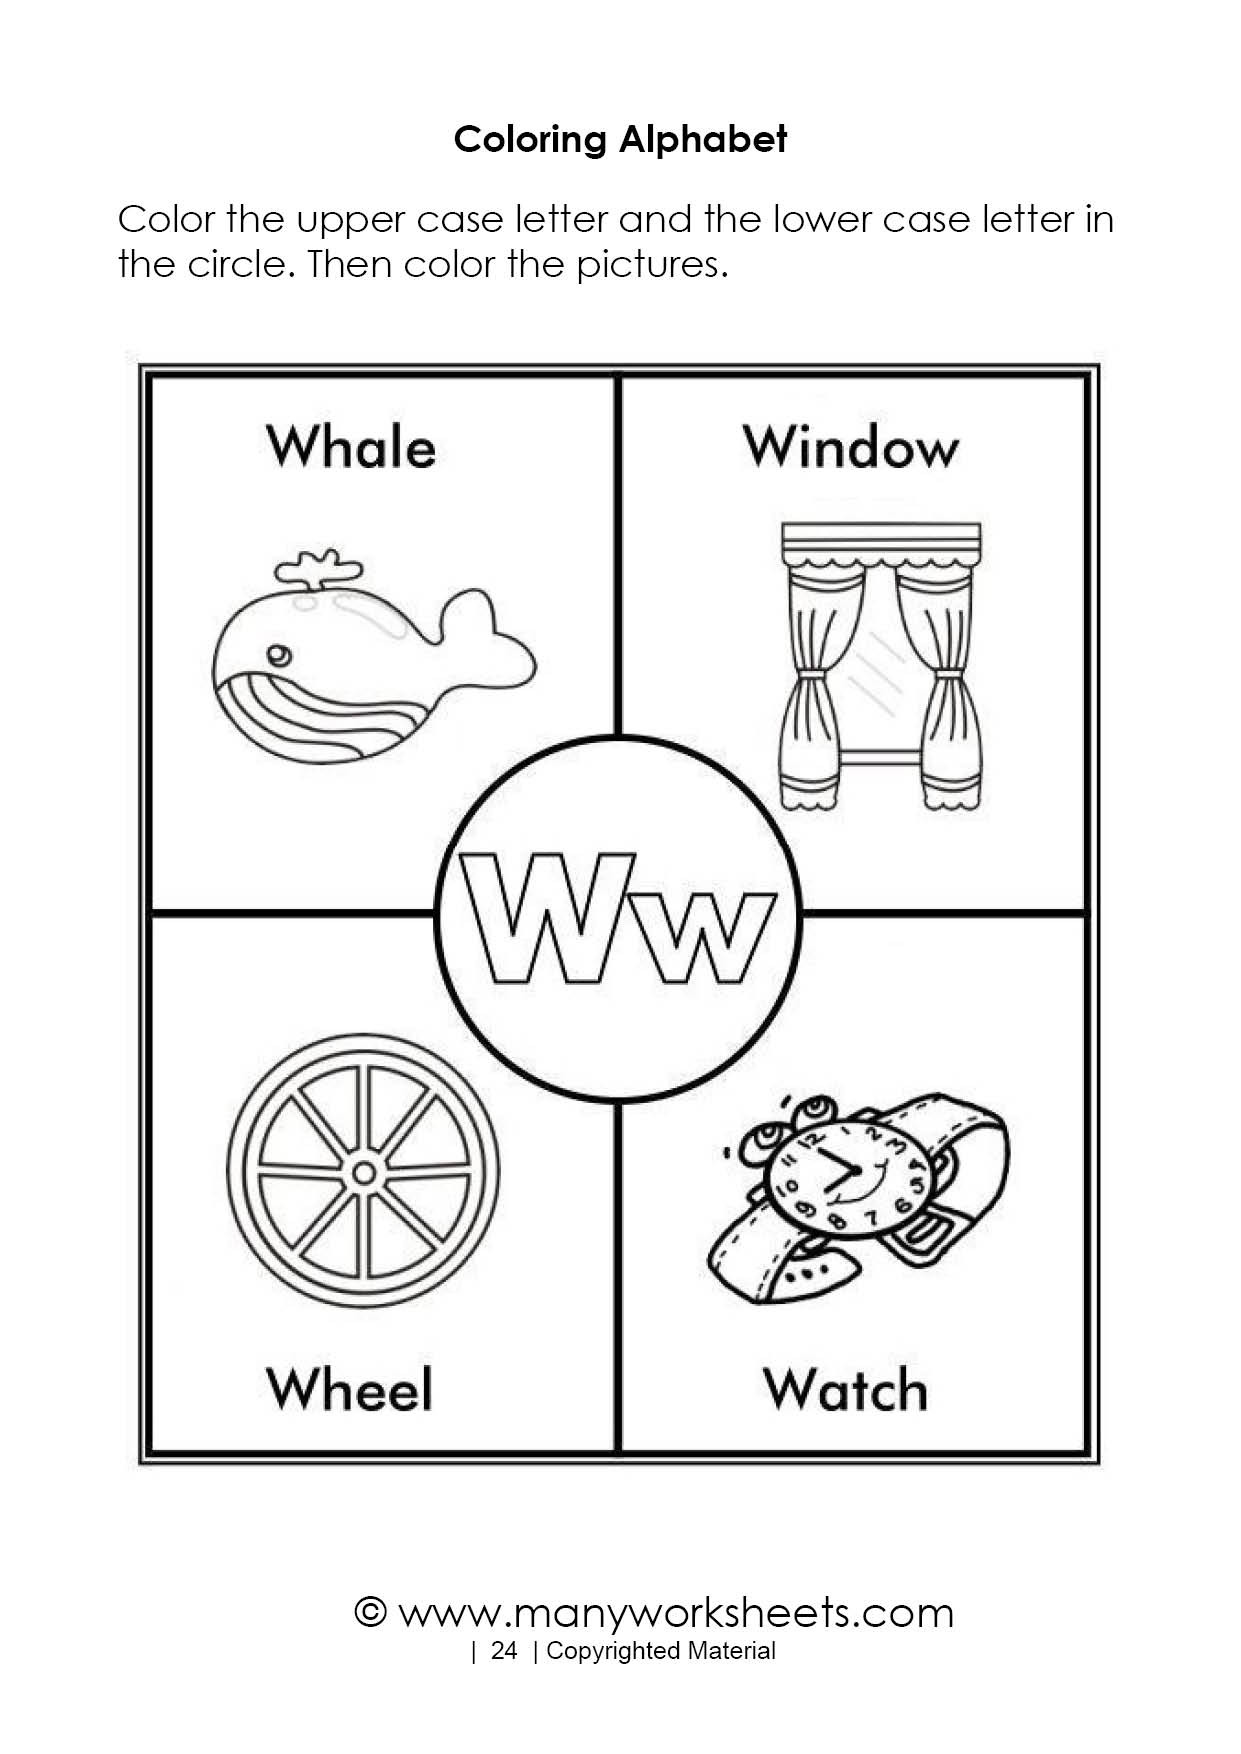 Letter W Worksheets for Preschoolers Alphabet Coloring Pages – Letter W